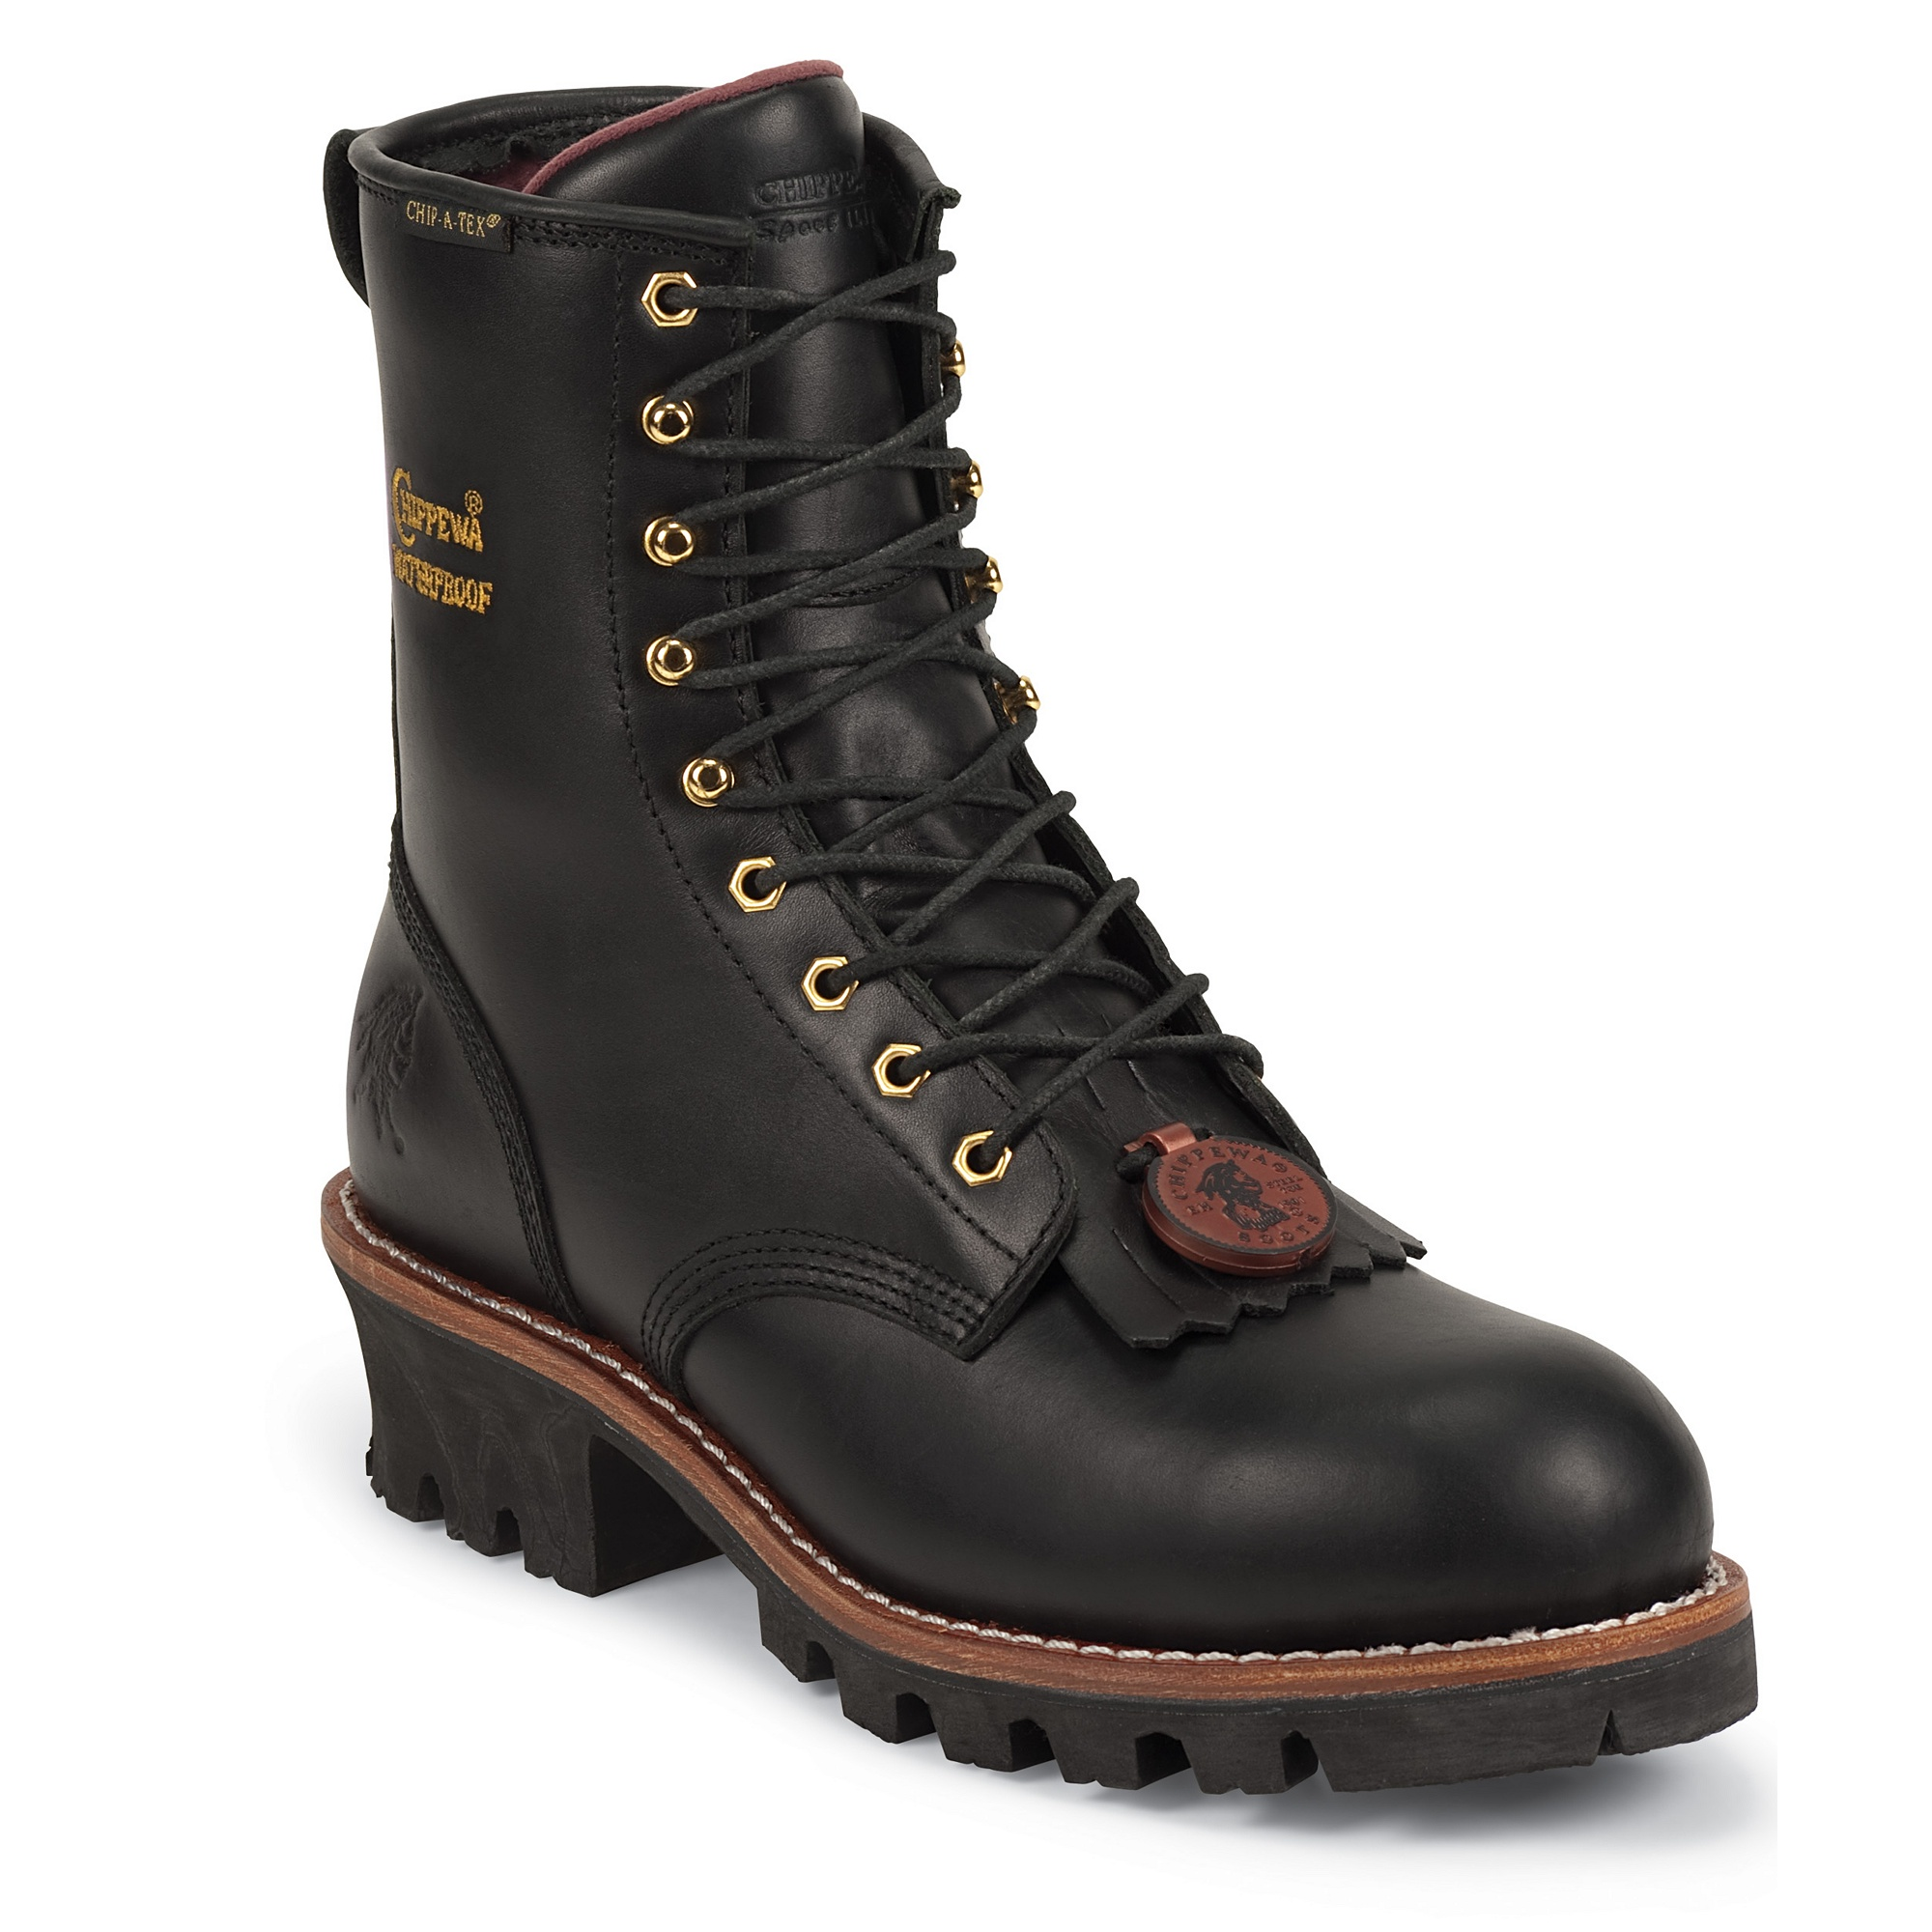 Chippewa 73050 Insulated Steel